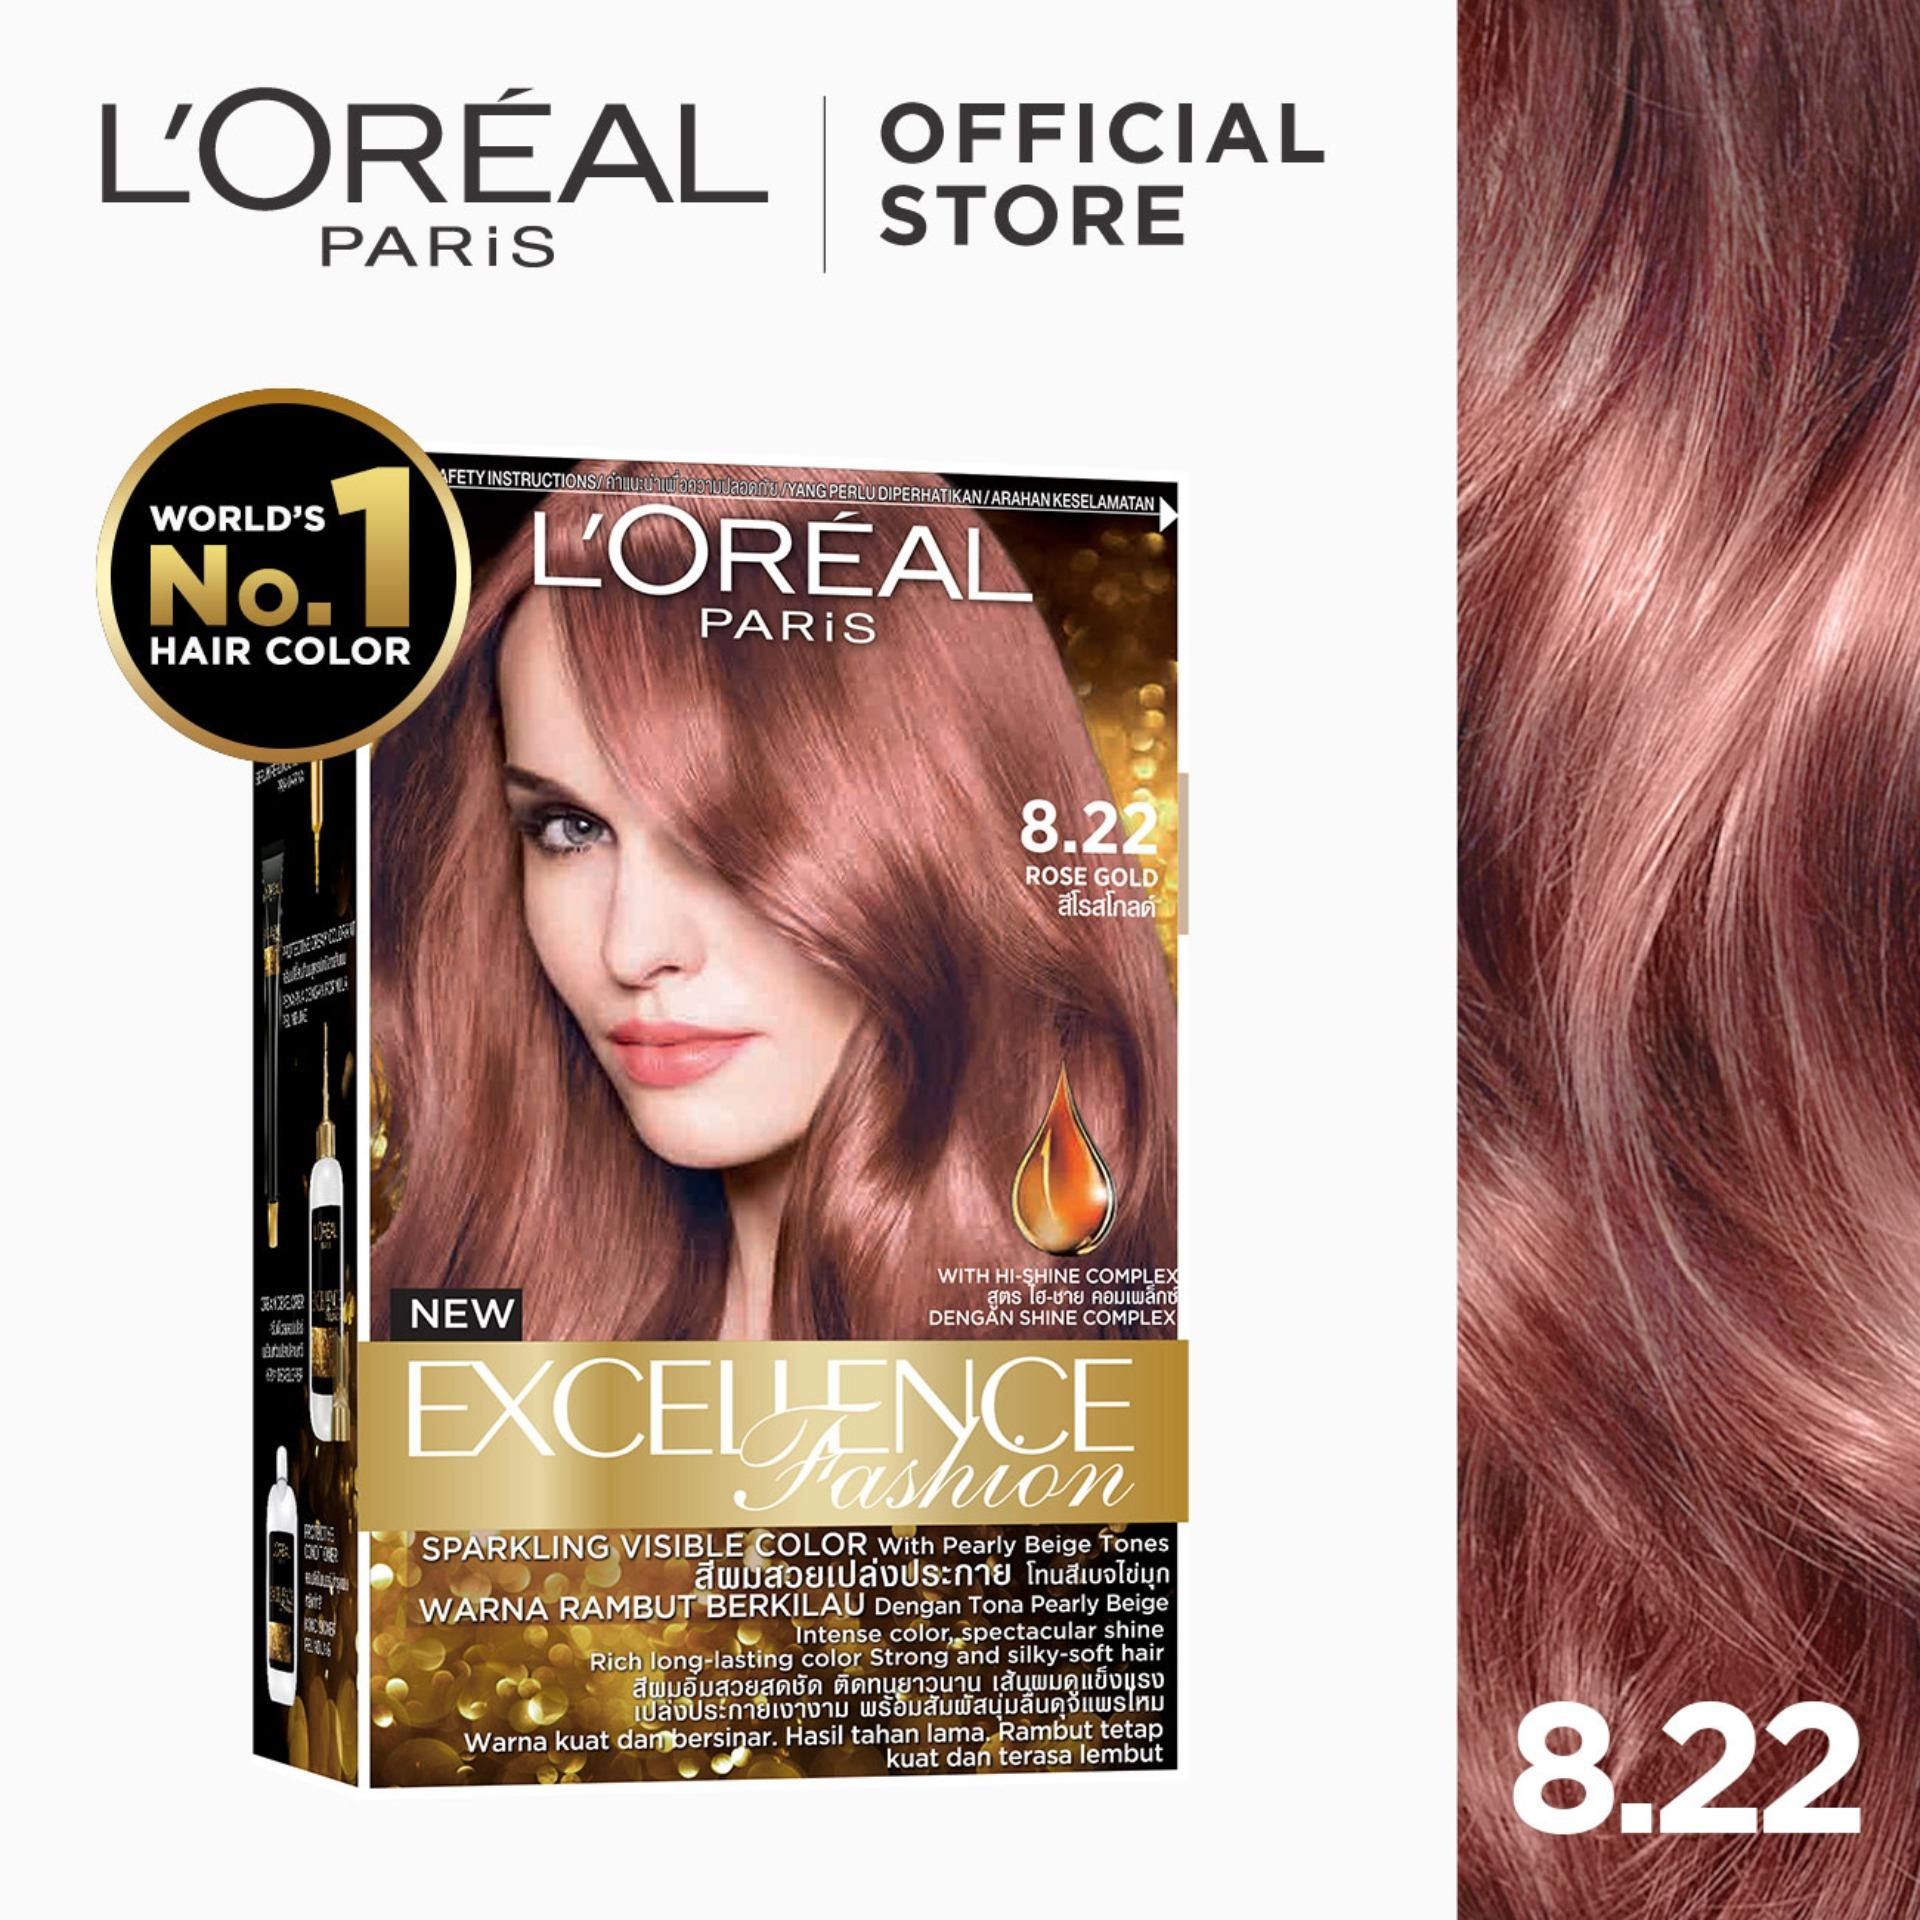 Excellence Fashion Parisian Gold [worlds No.1] By Loreal Paris [w/ Protective Serum & Conditioner] By Loreal.